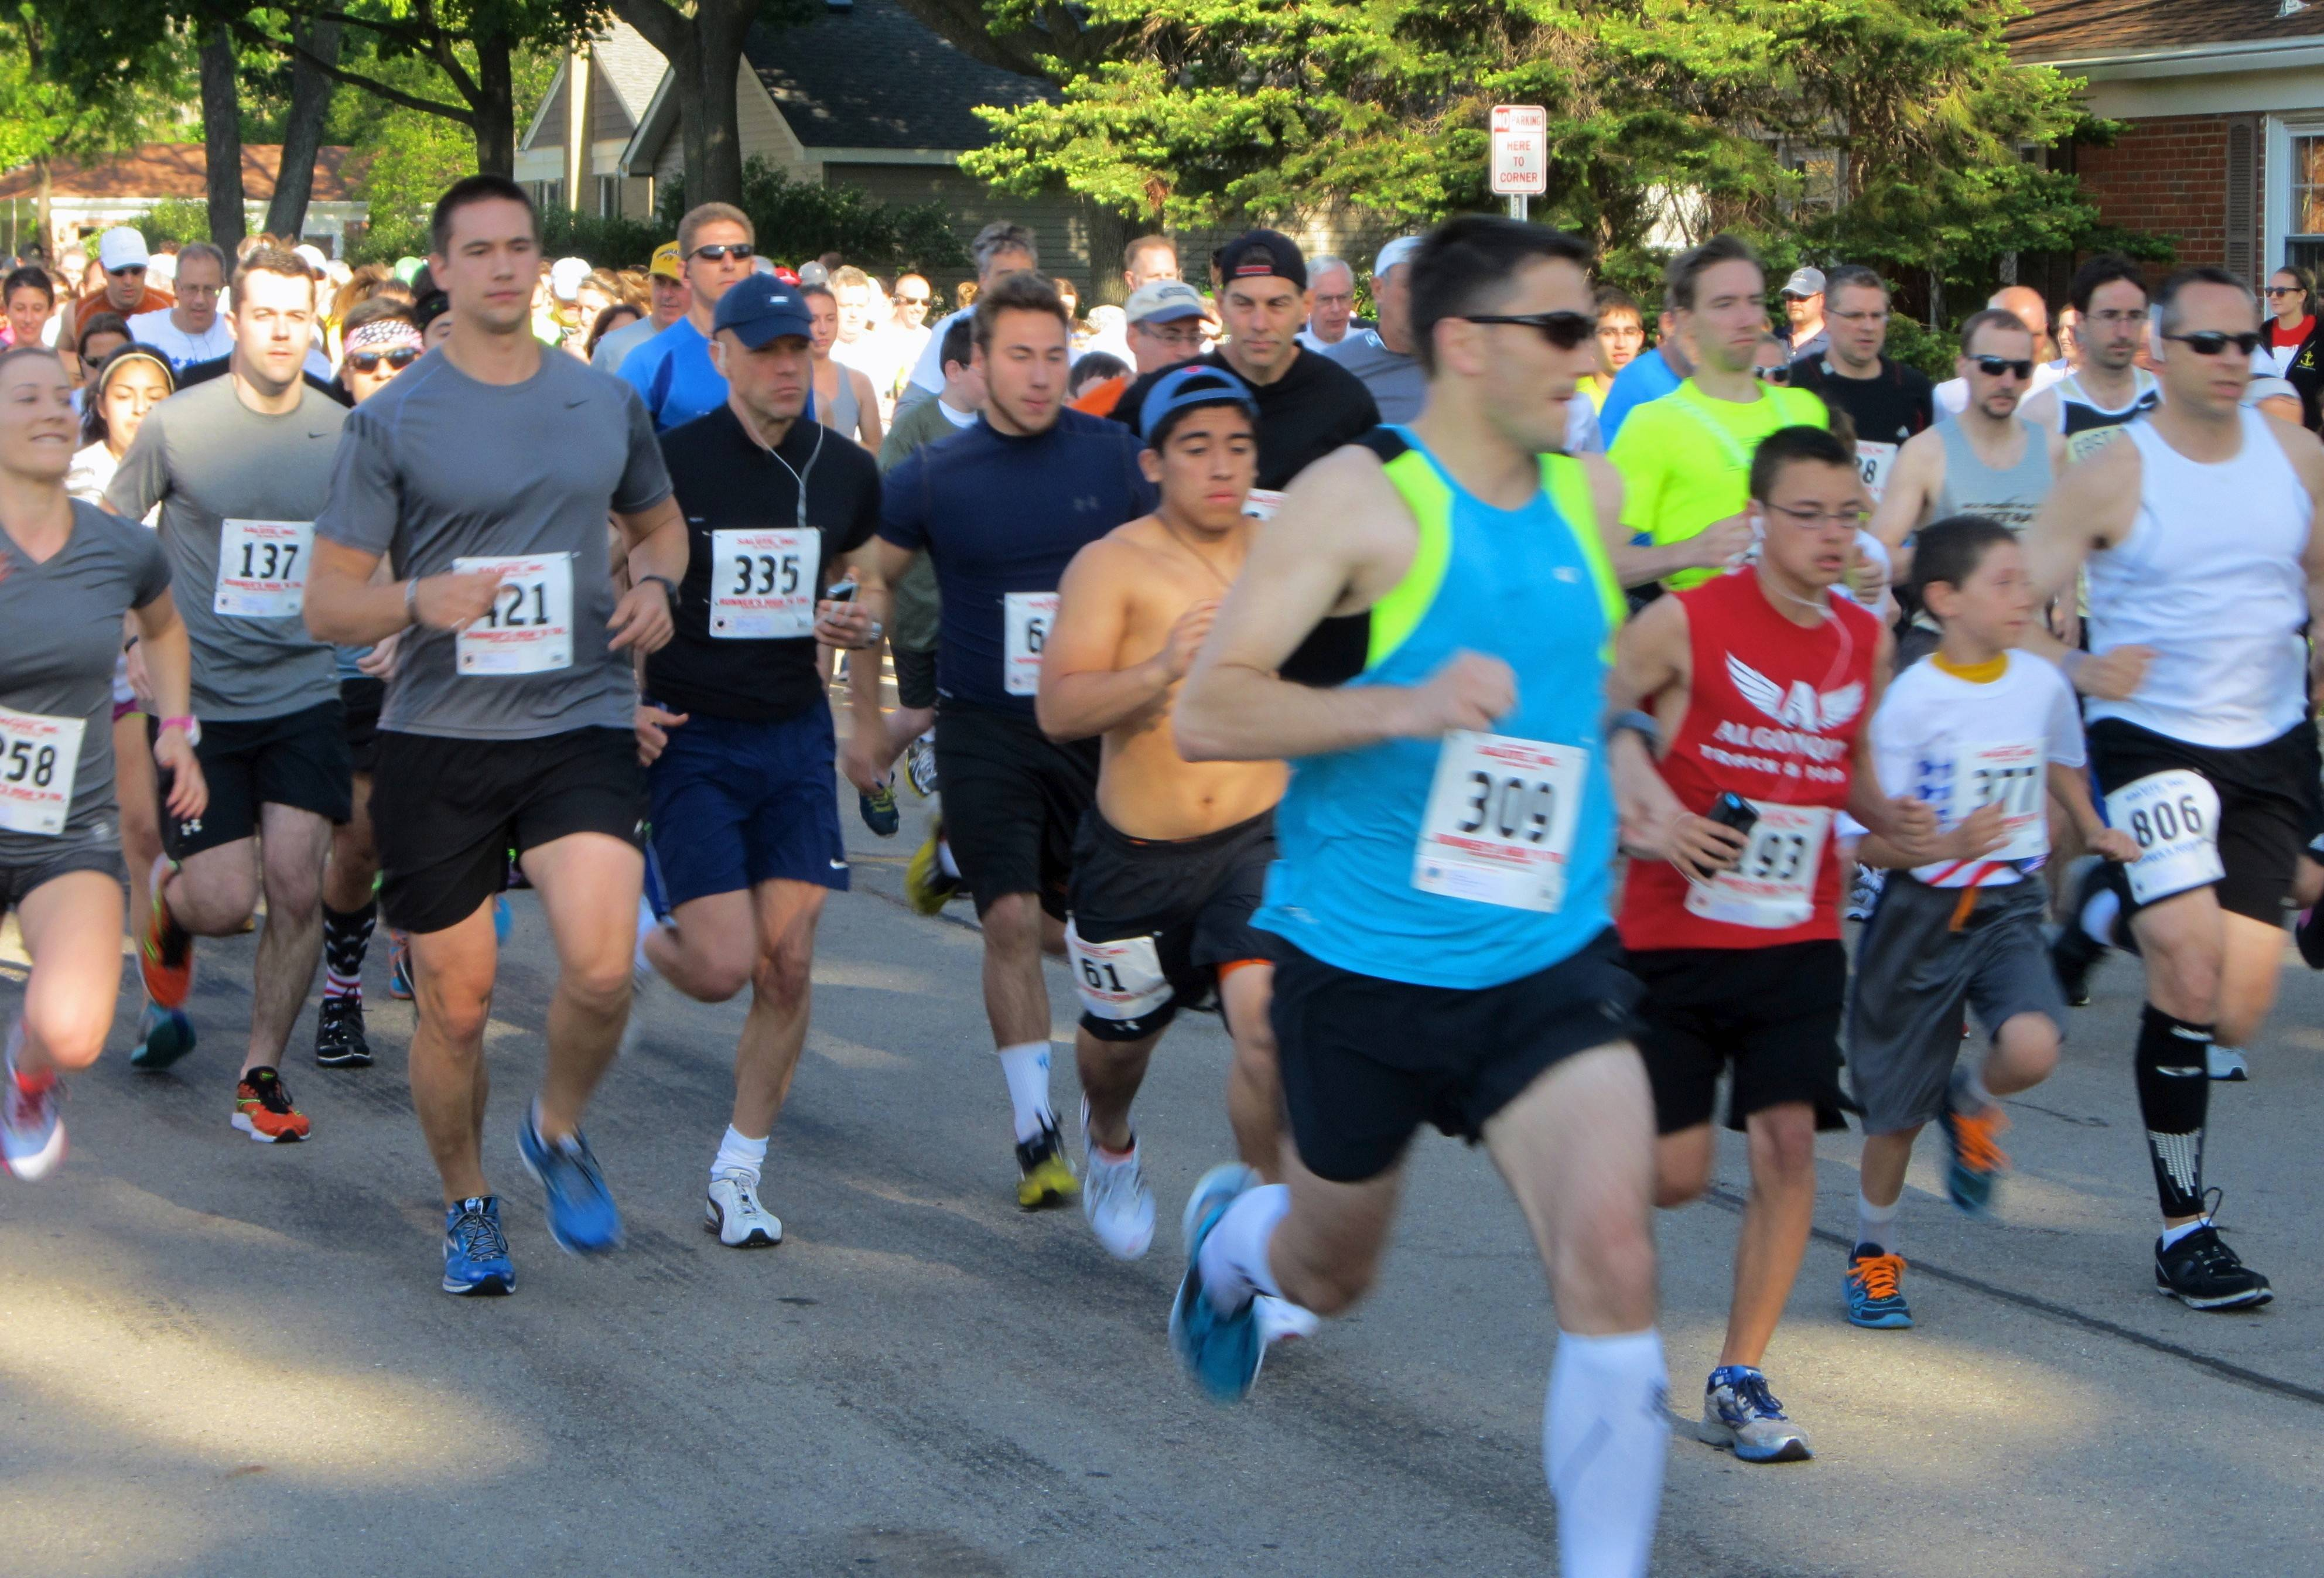 Participants in the 11th annual Salute Inc. Got Freedom? run/walk head down Miner Street Sunday in Arlington Heights.